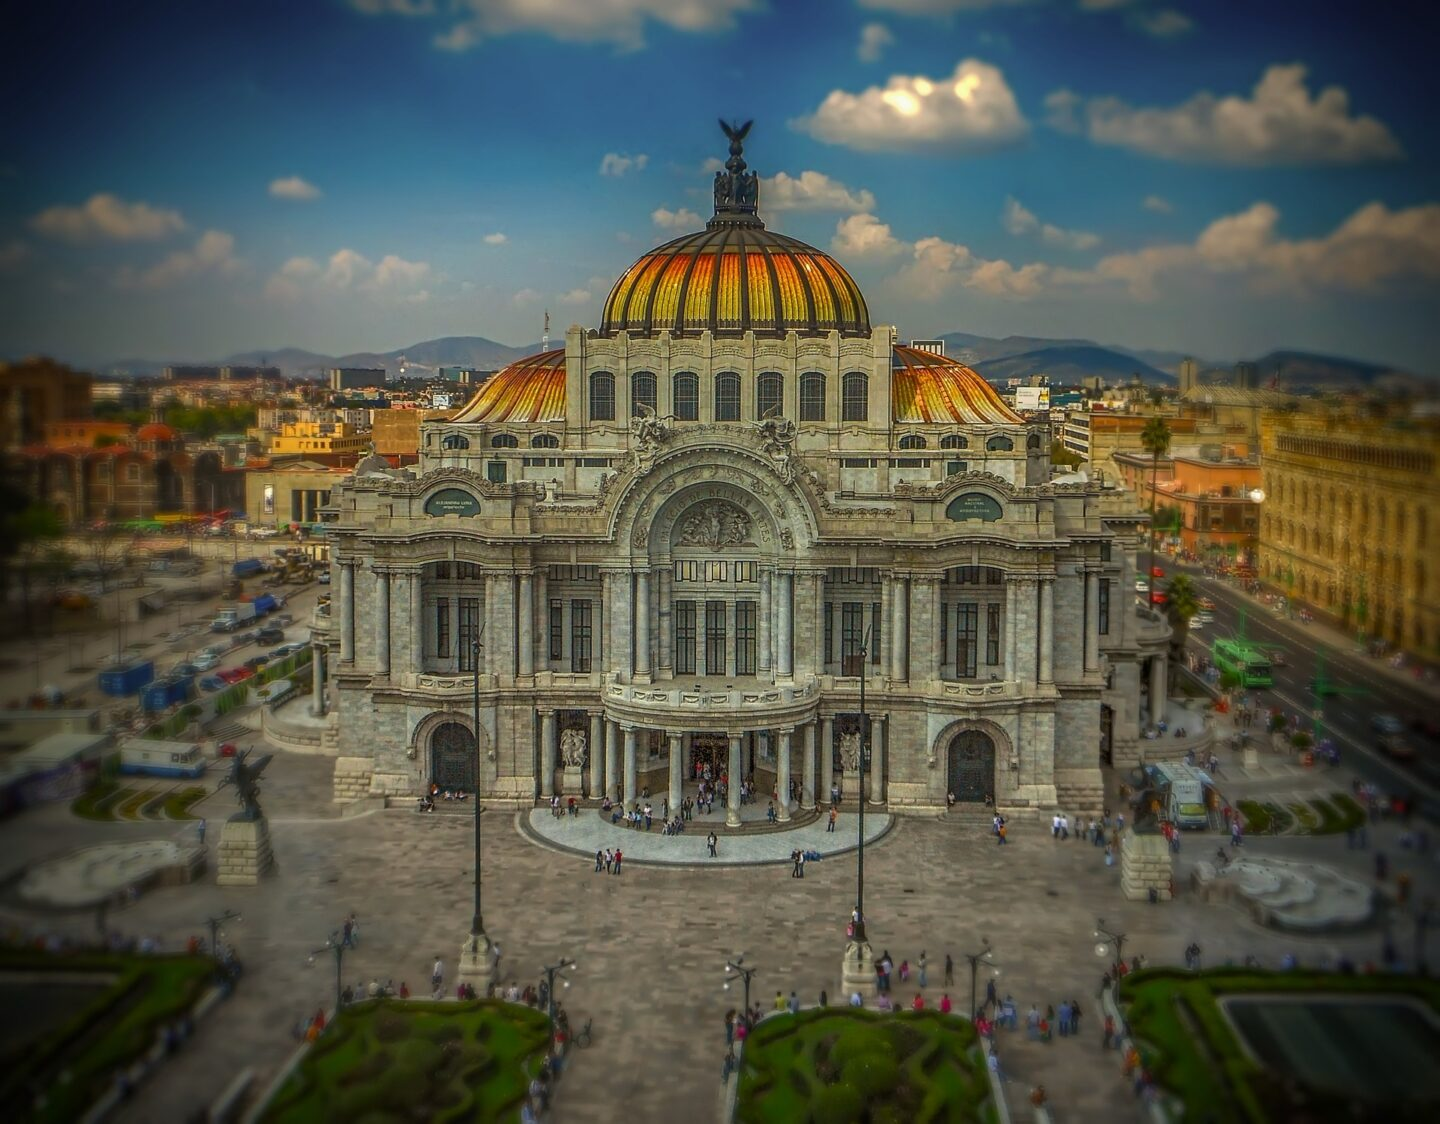 Mexico Immigration Policies for Tourists